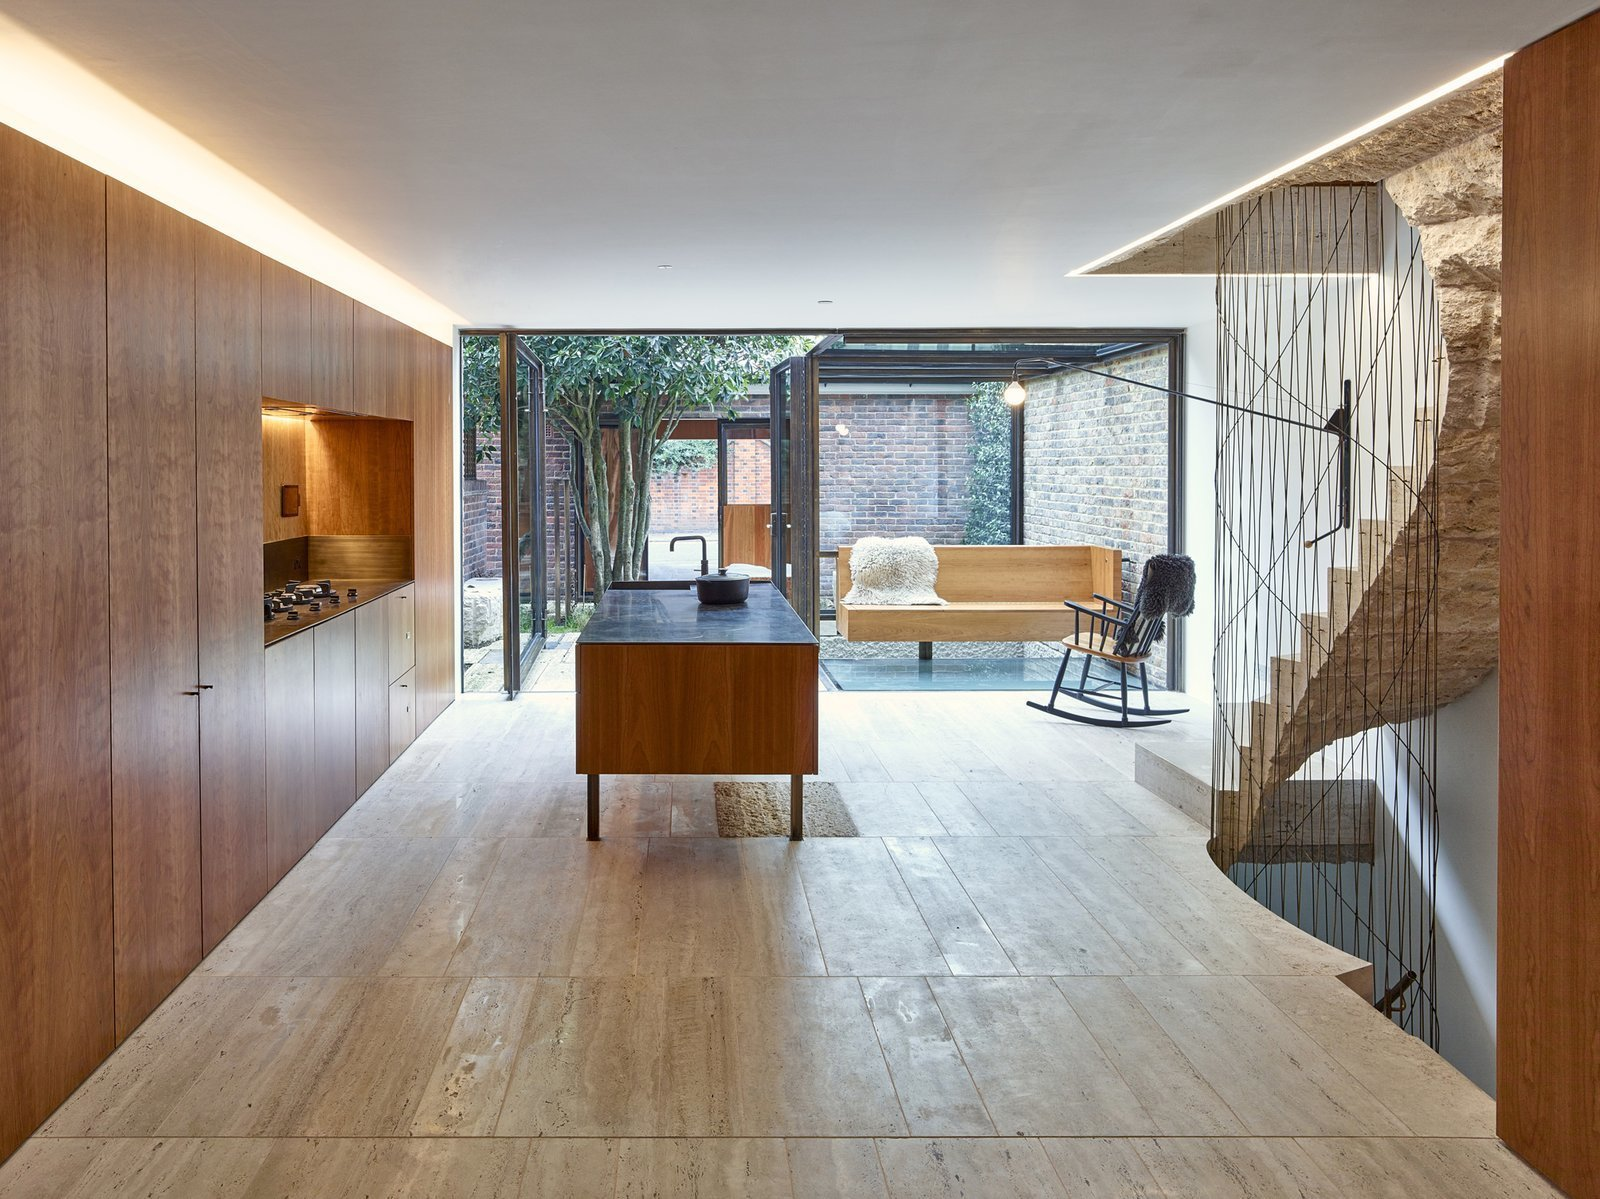 In this Edwardian London house, the colors and textures of brick that forms the perimeter of a outdoor courtyard, can be enjoyed through floor-to-ceiling windows in the kitchen. 10 Modern Structures That Use Brick in Interesting Ways - Photo 6 of 10